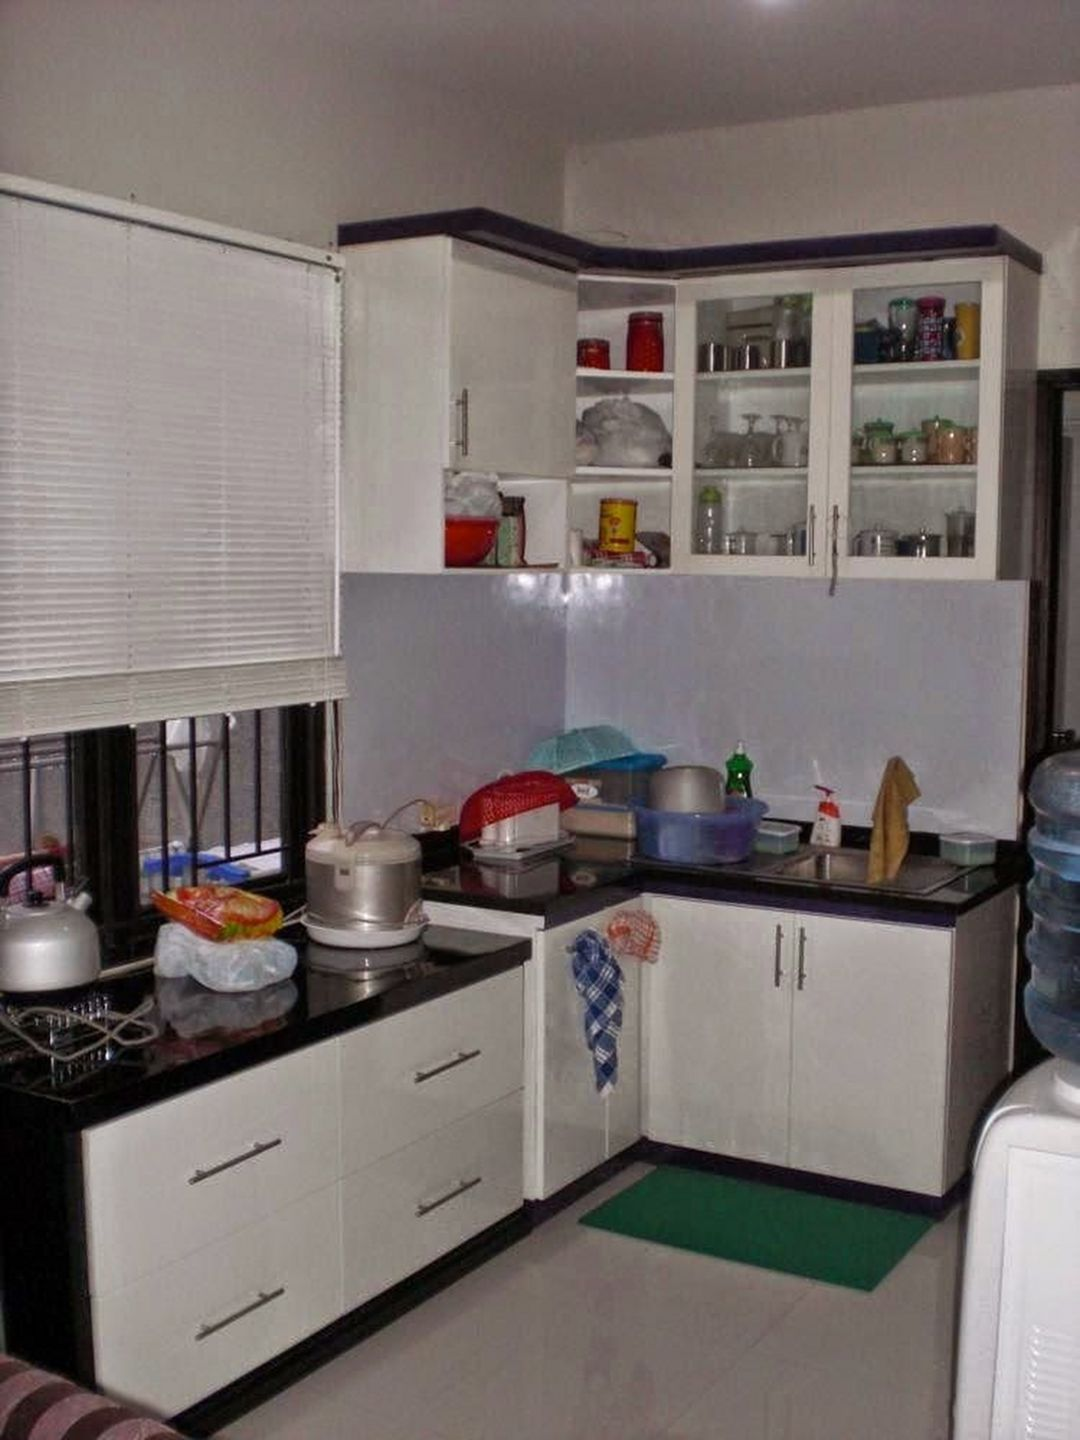 fabulous kitchen ideas on a budget that you need to know